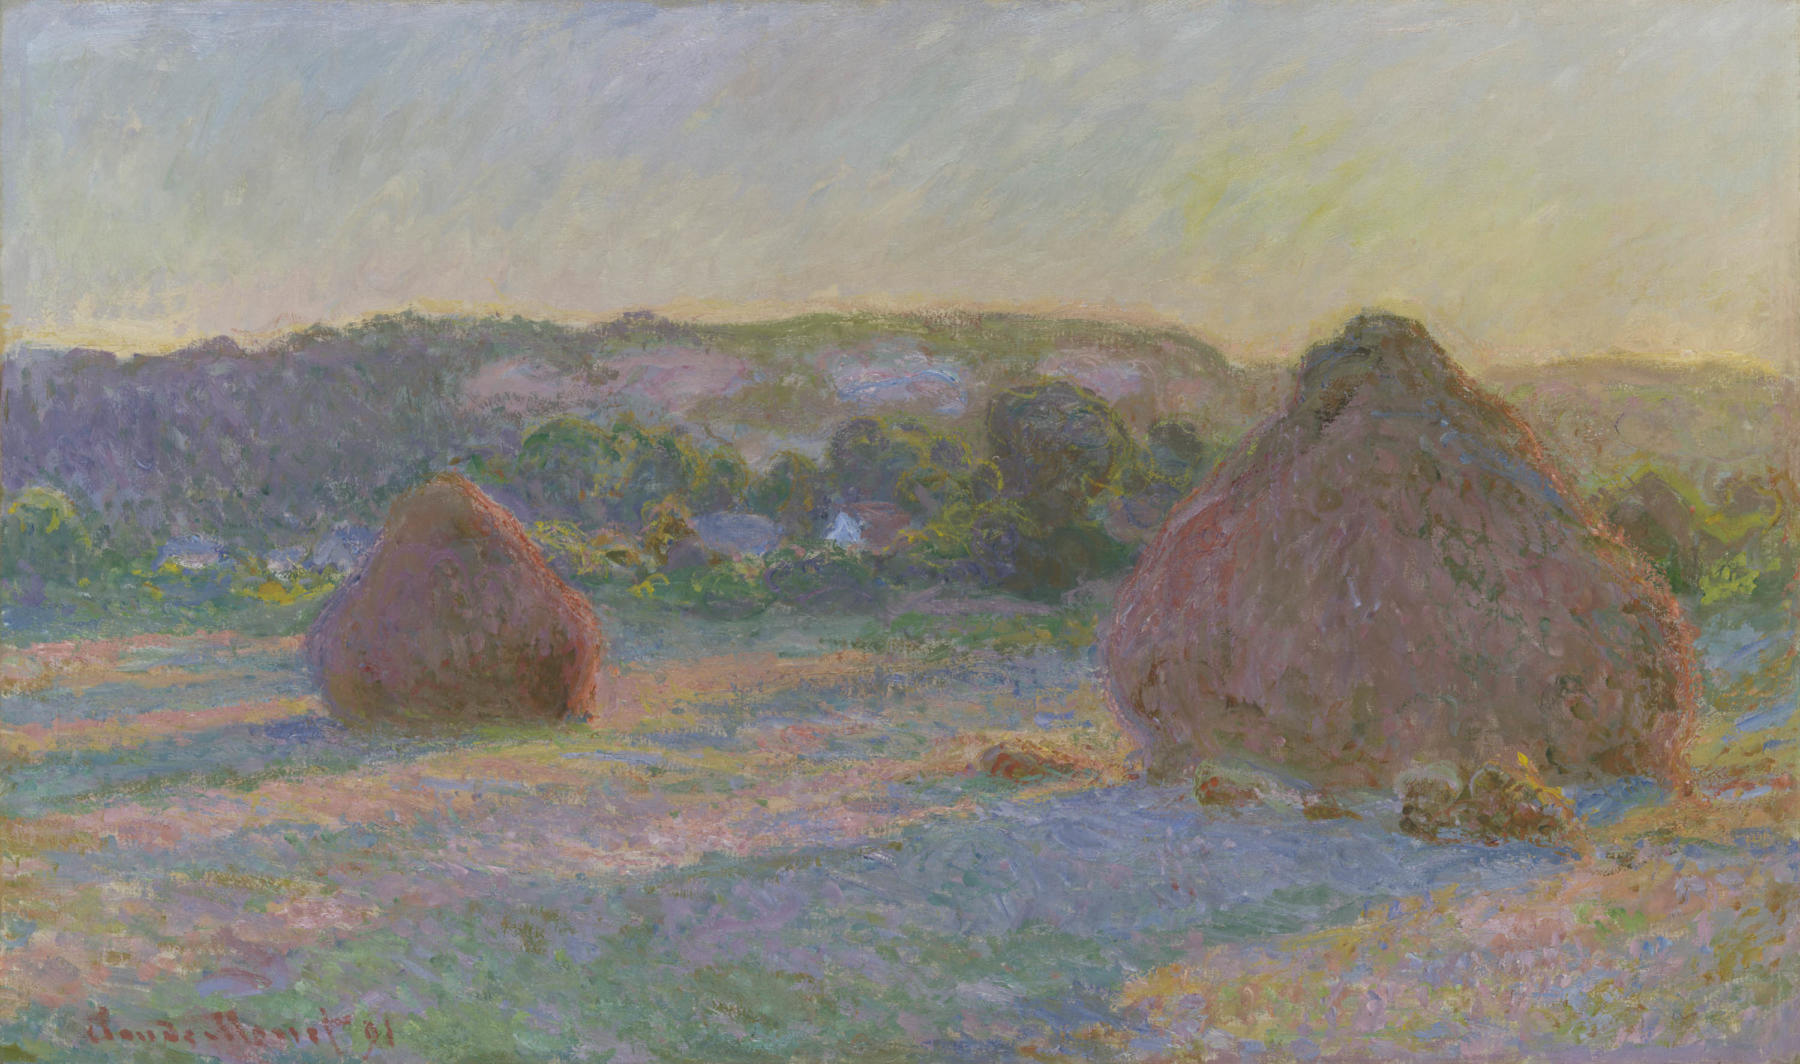 Claude Monet. Stacks of Wheat (End of Summer), 1890:91. The Art Institute of Chicago, Gift of Arthur M. Wood, Sr. in memory of Pauline Palmer Wood.